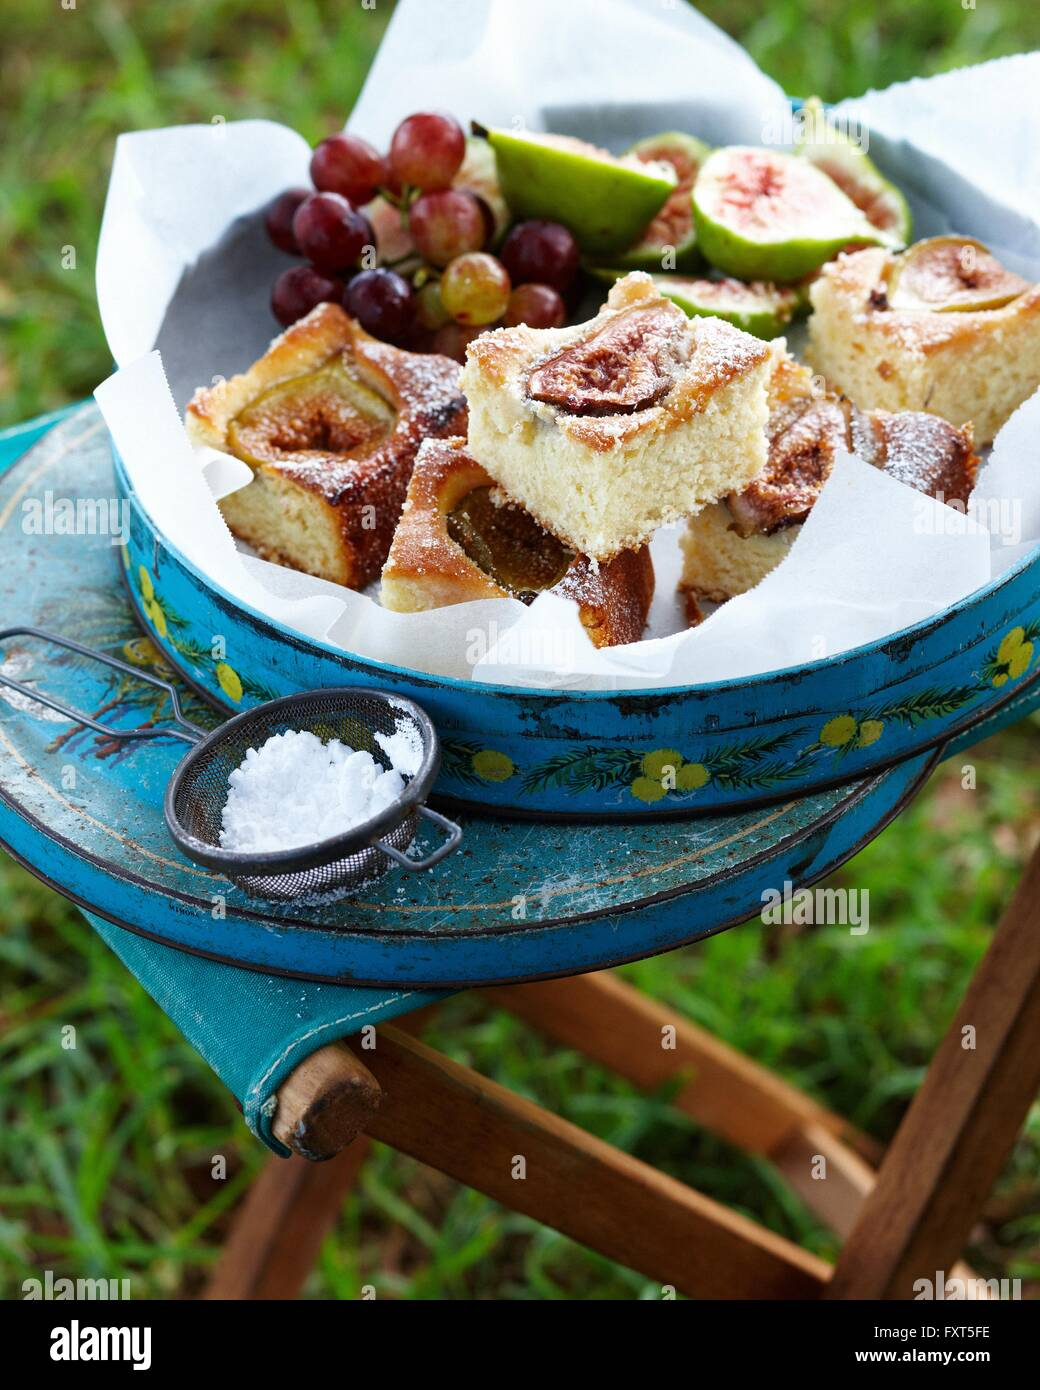 Coconut cake with figs and grapes in cake tin - Stock Image